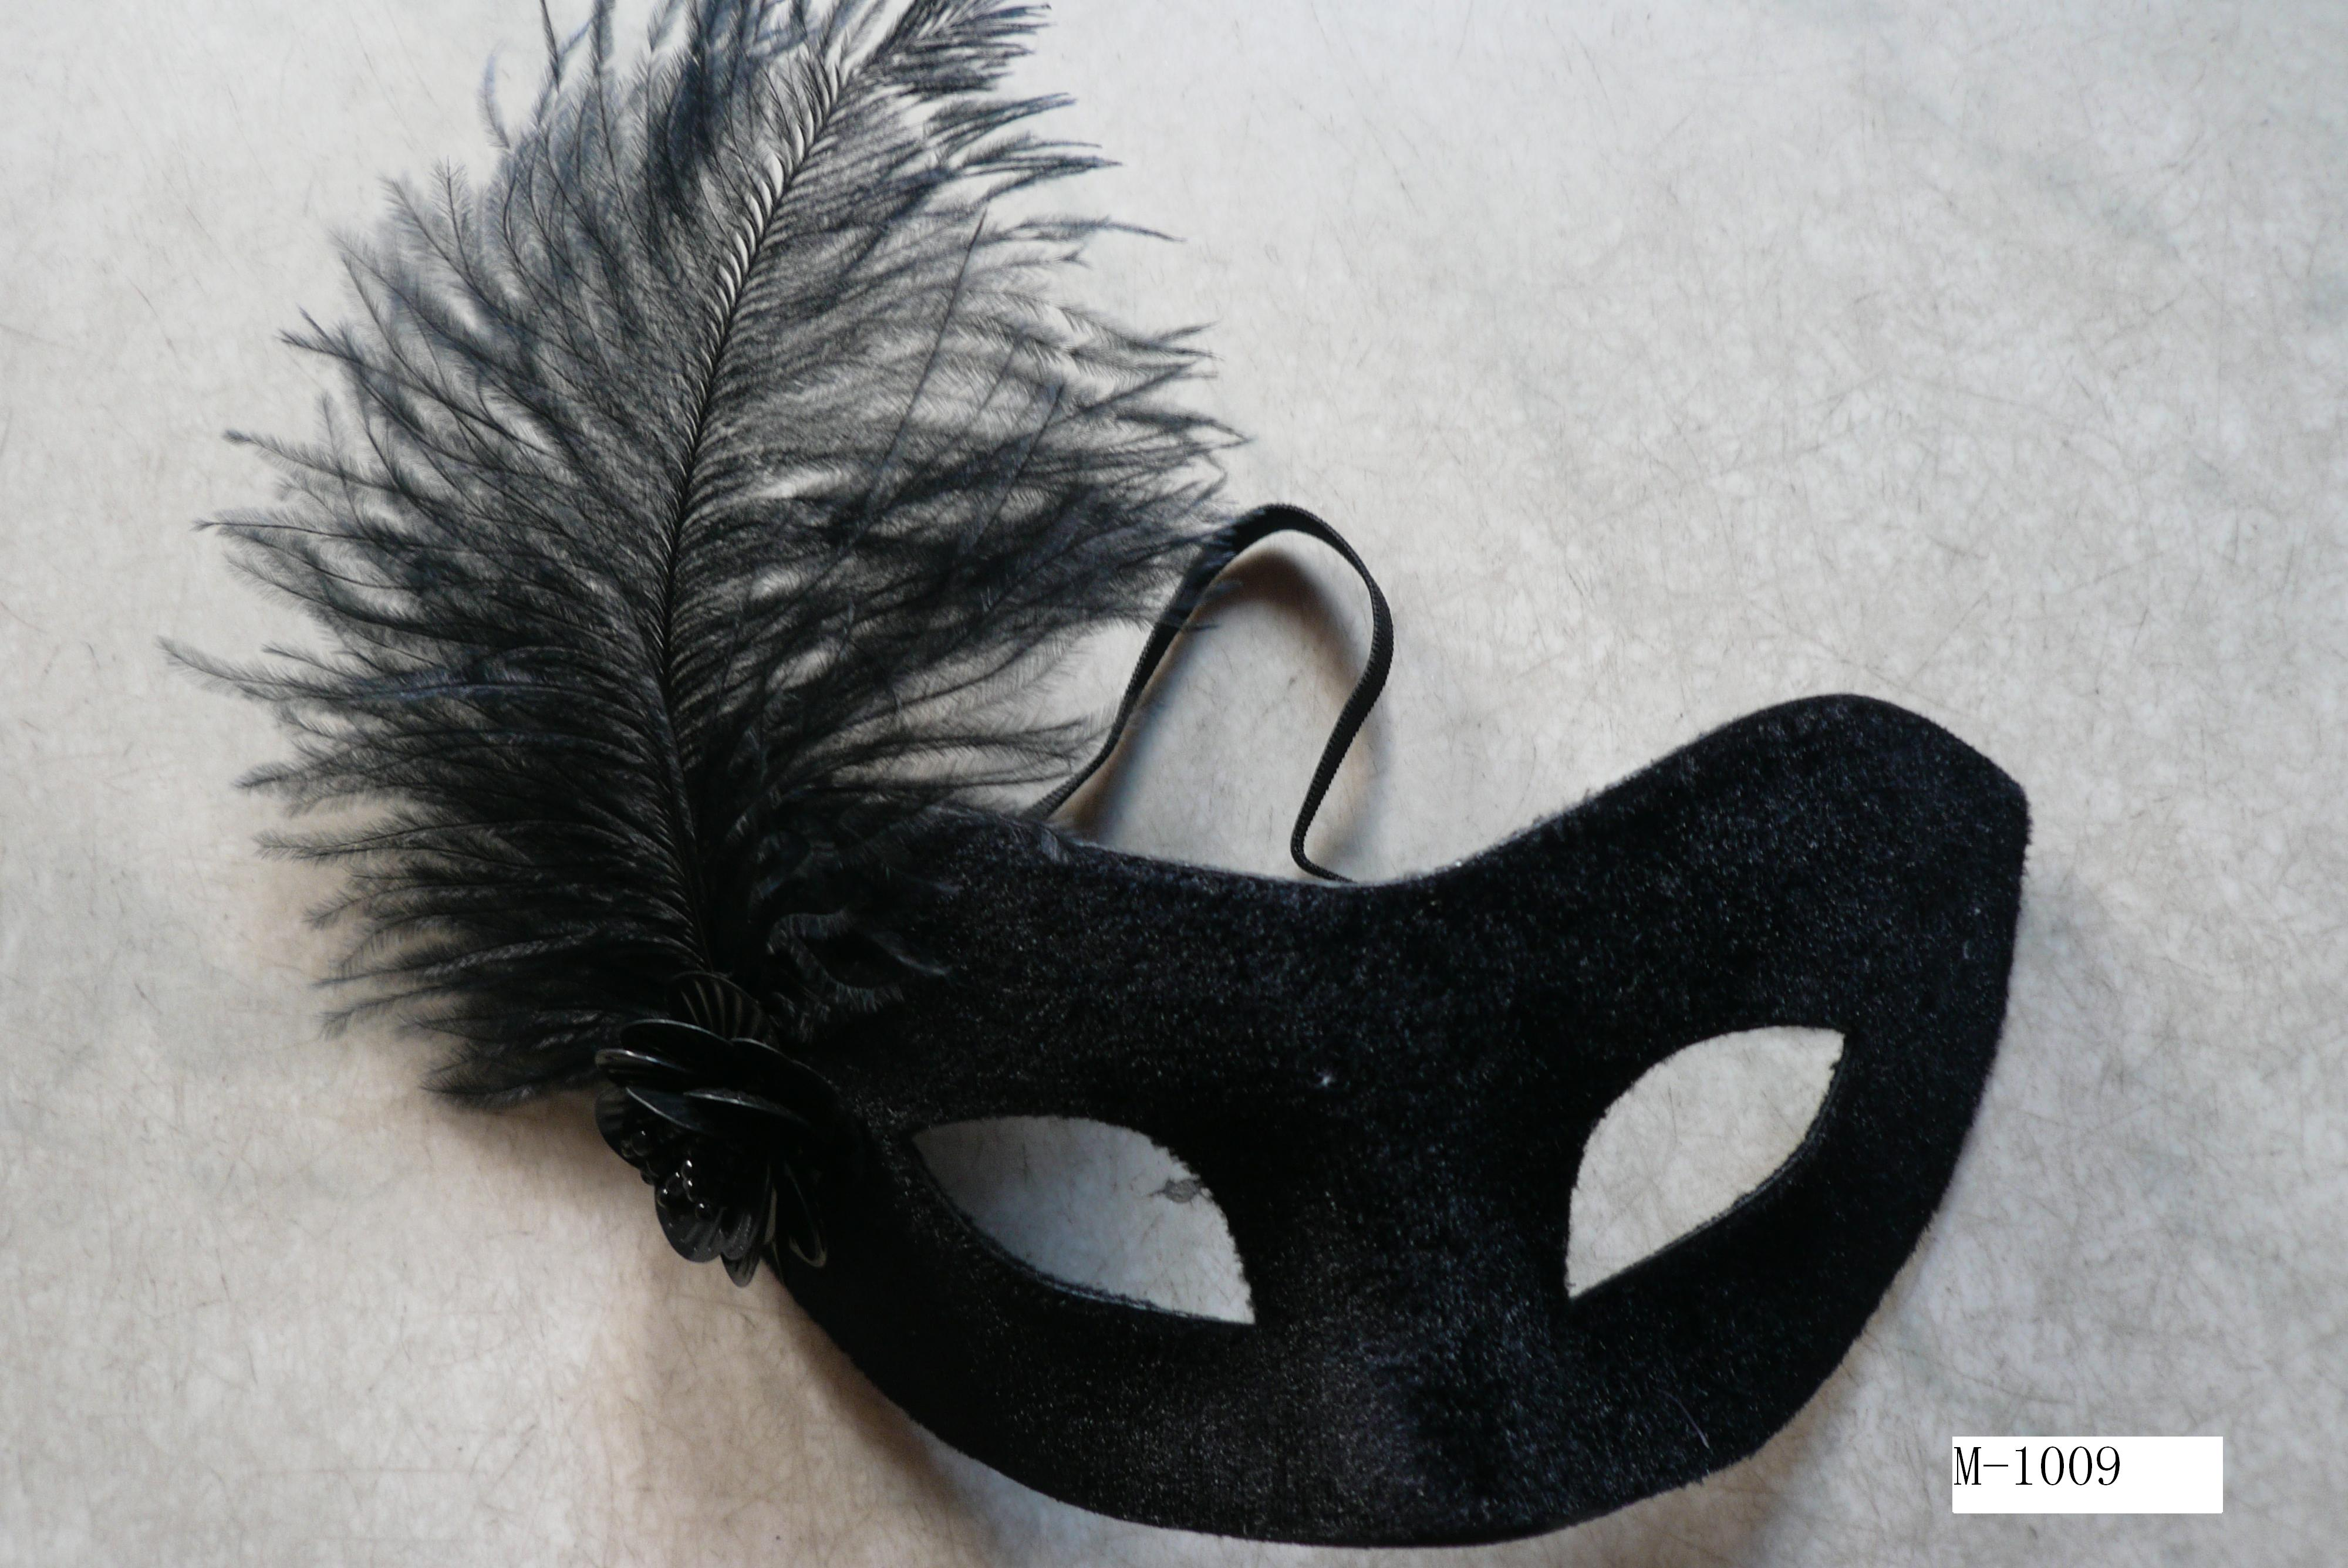 Cheap feather masks for sale - Made in China M-1009